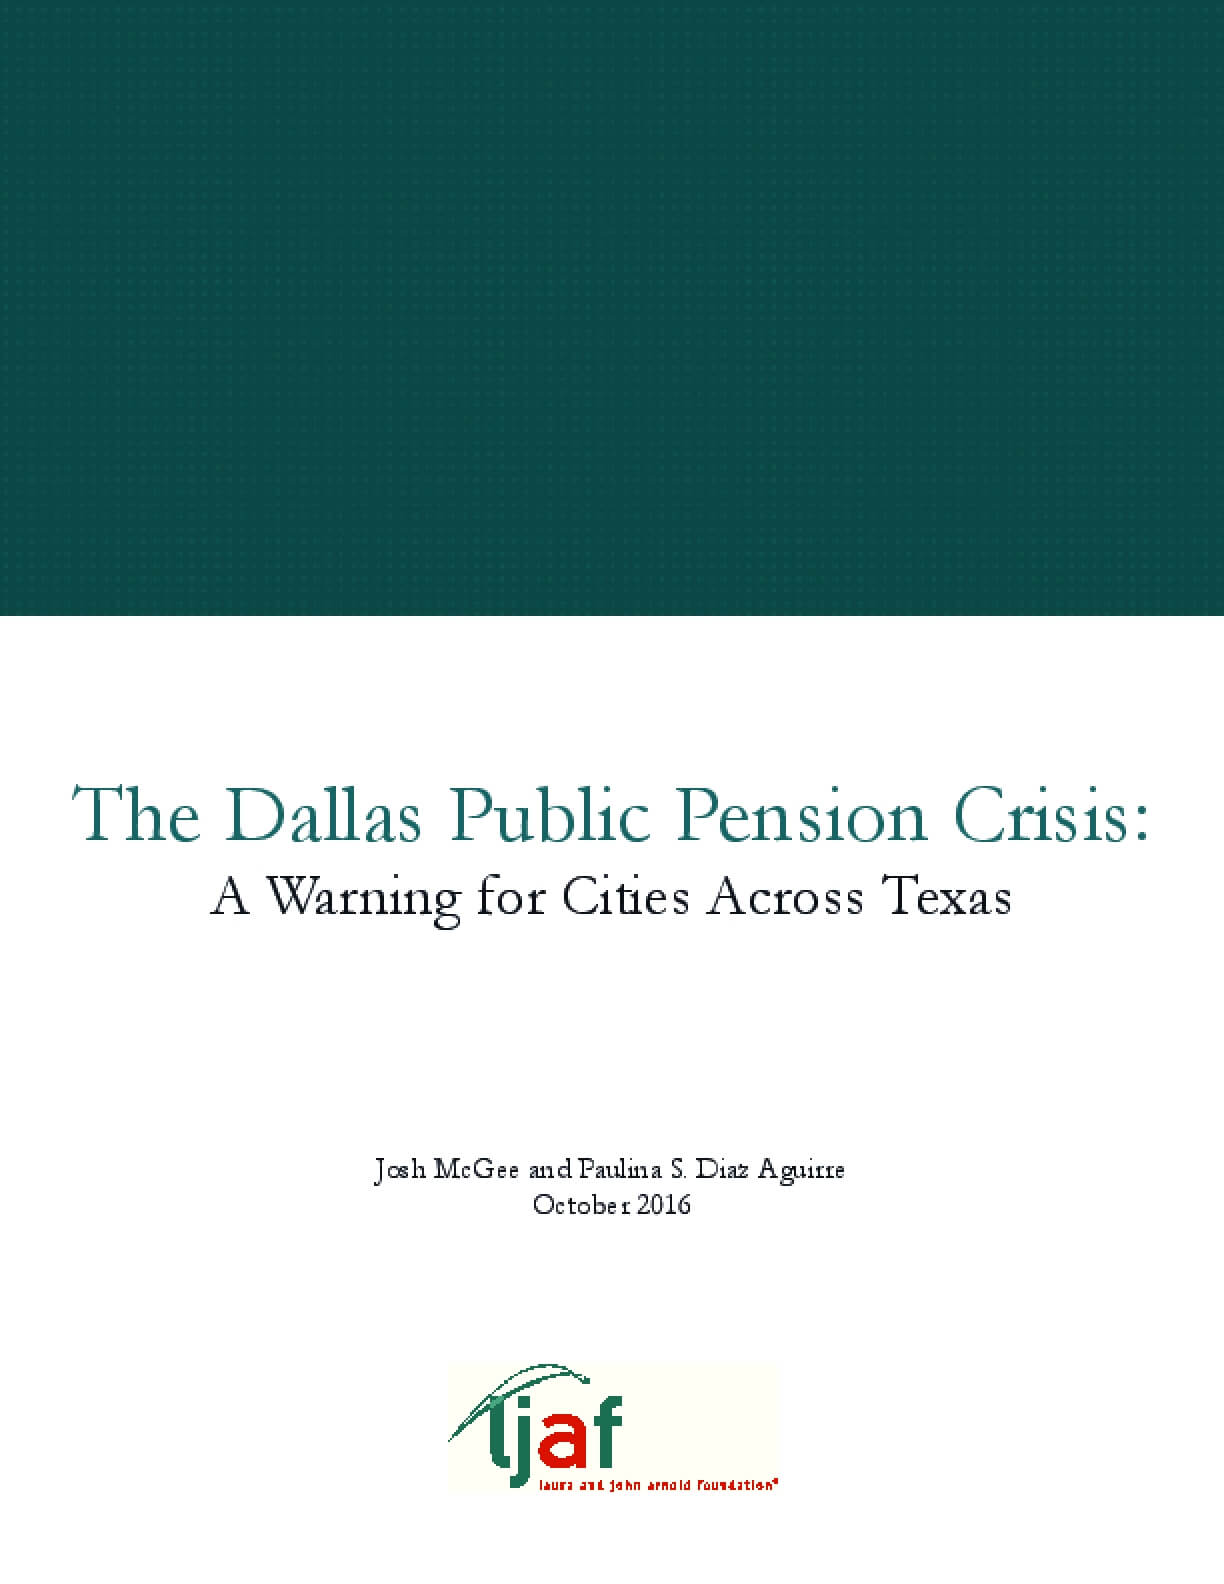 The Dallas Public Pension Crisis: A Warning for Cities Across Texas